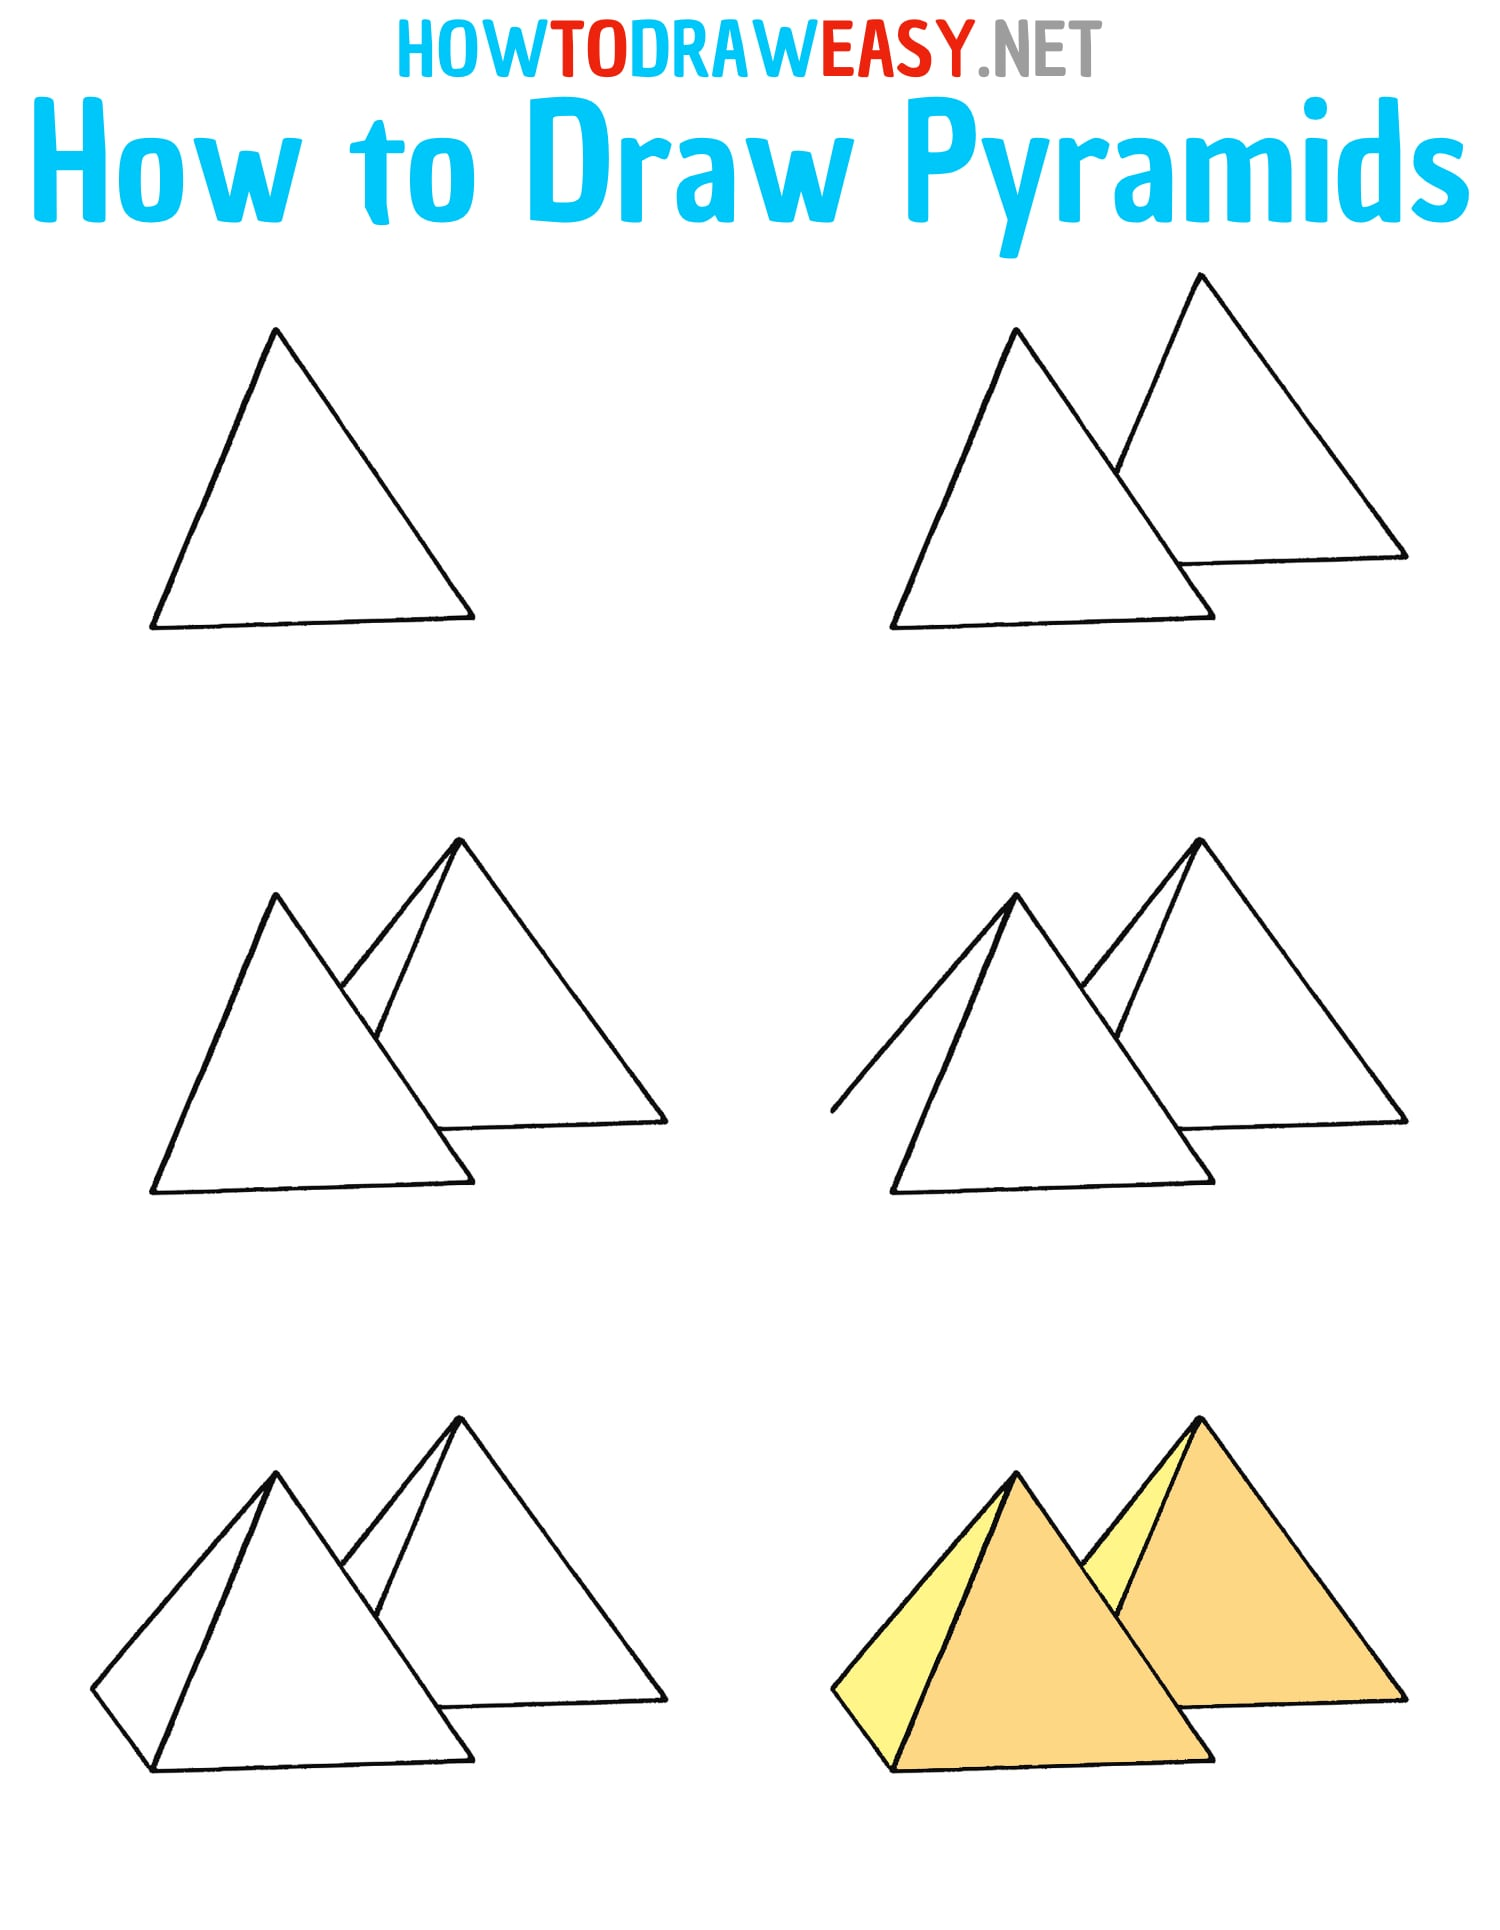 How to Draw Pyramids Step by Step